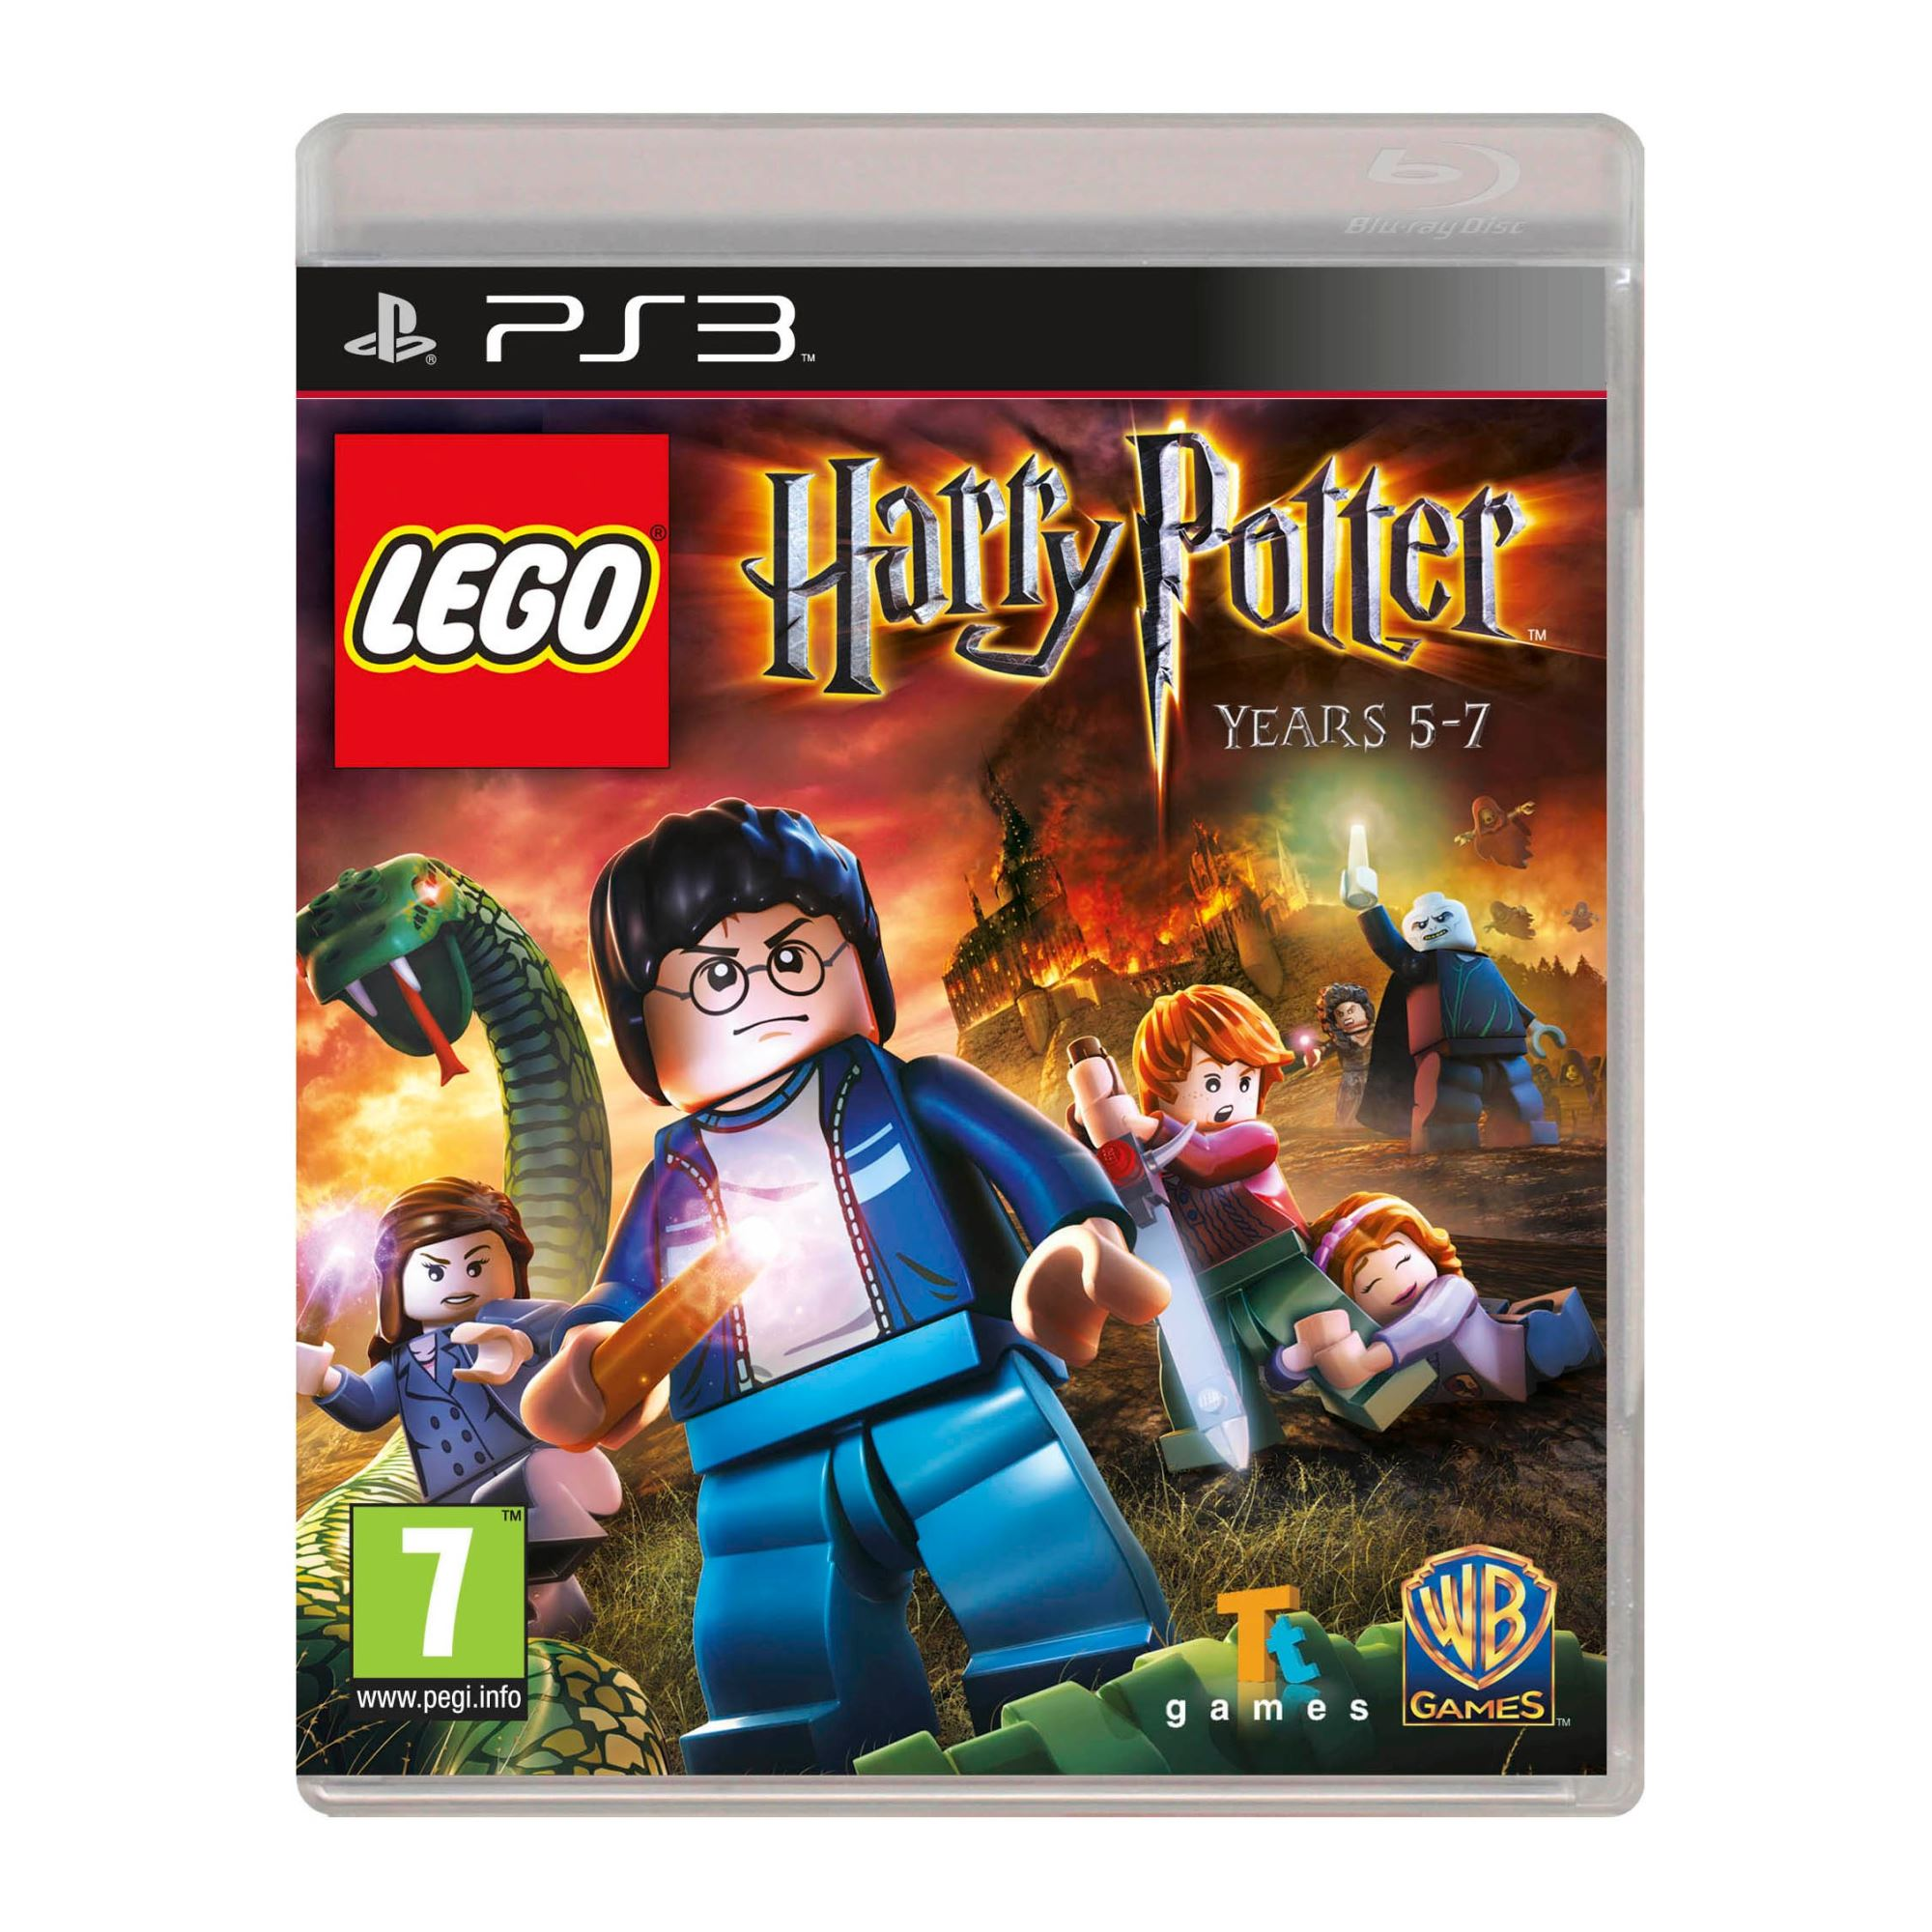 LEGO Harry Potter 2 Years 57 PS3